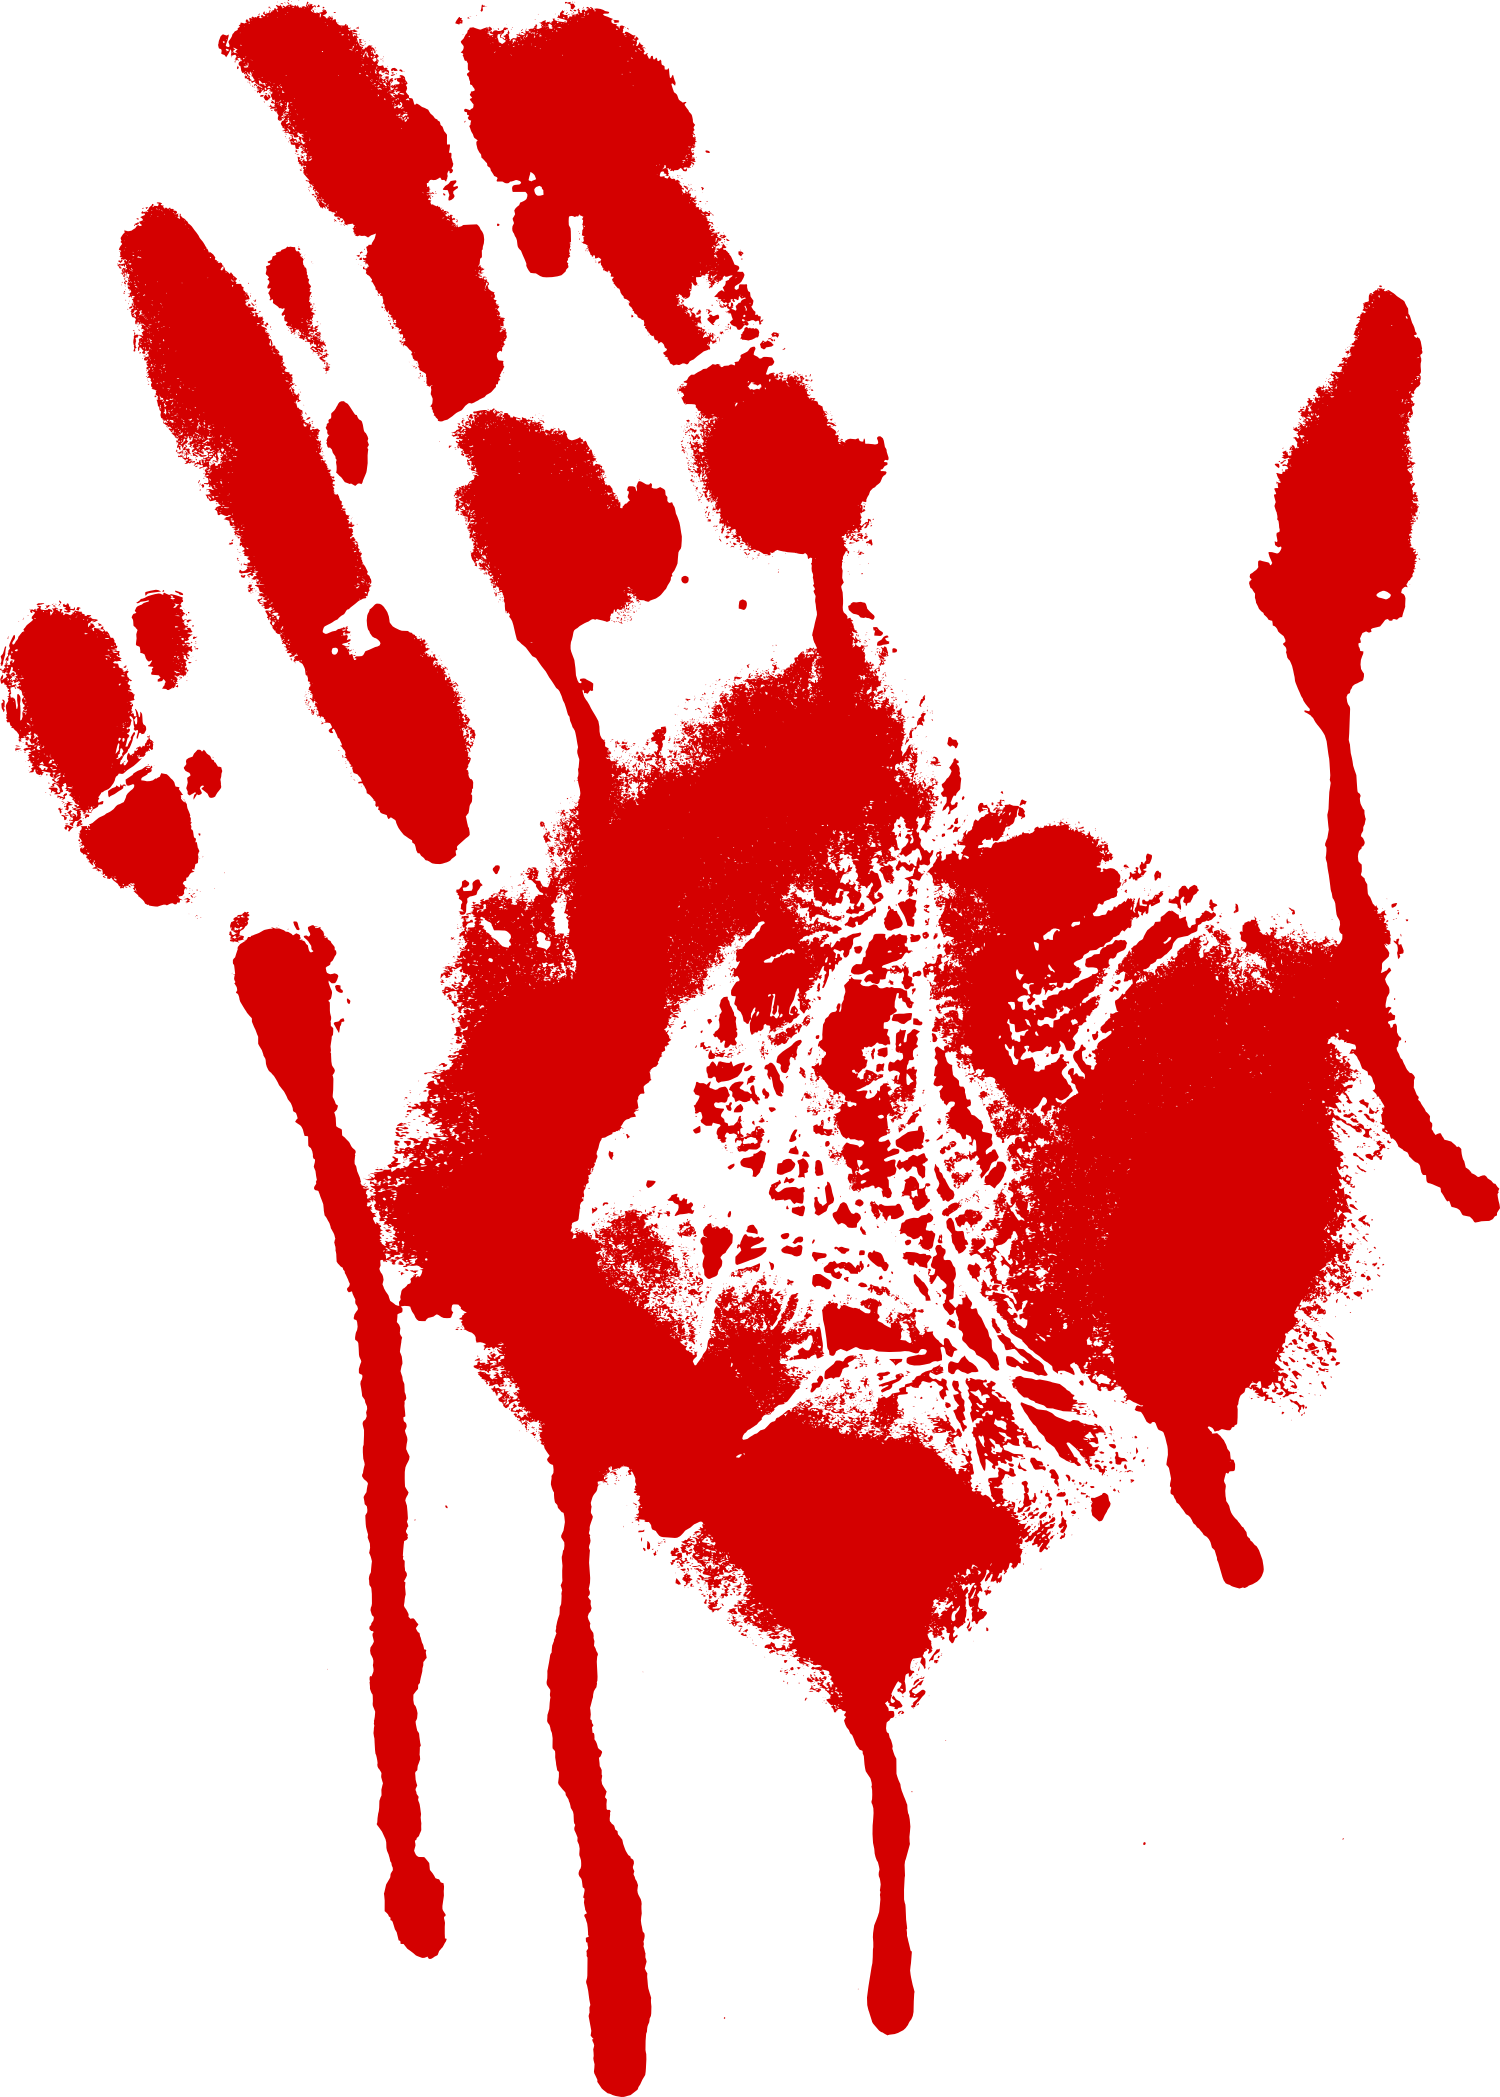 red bloody png. Handprint drawing blood vector free